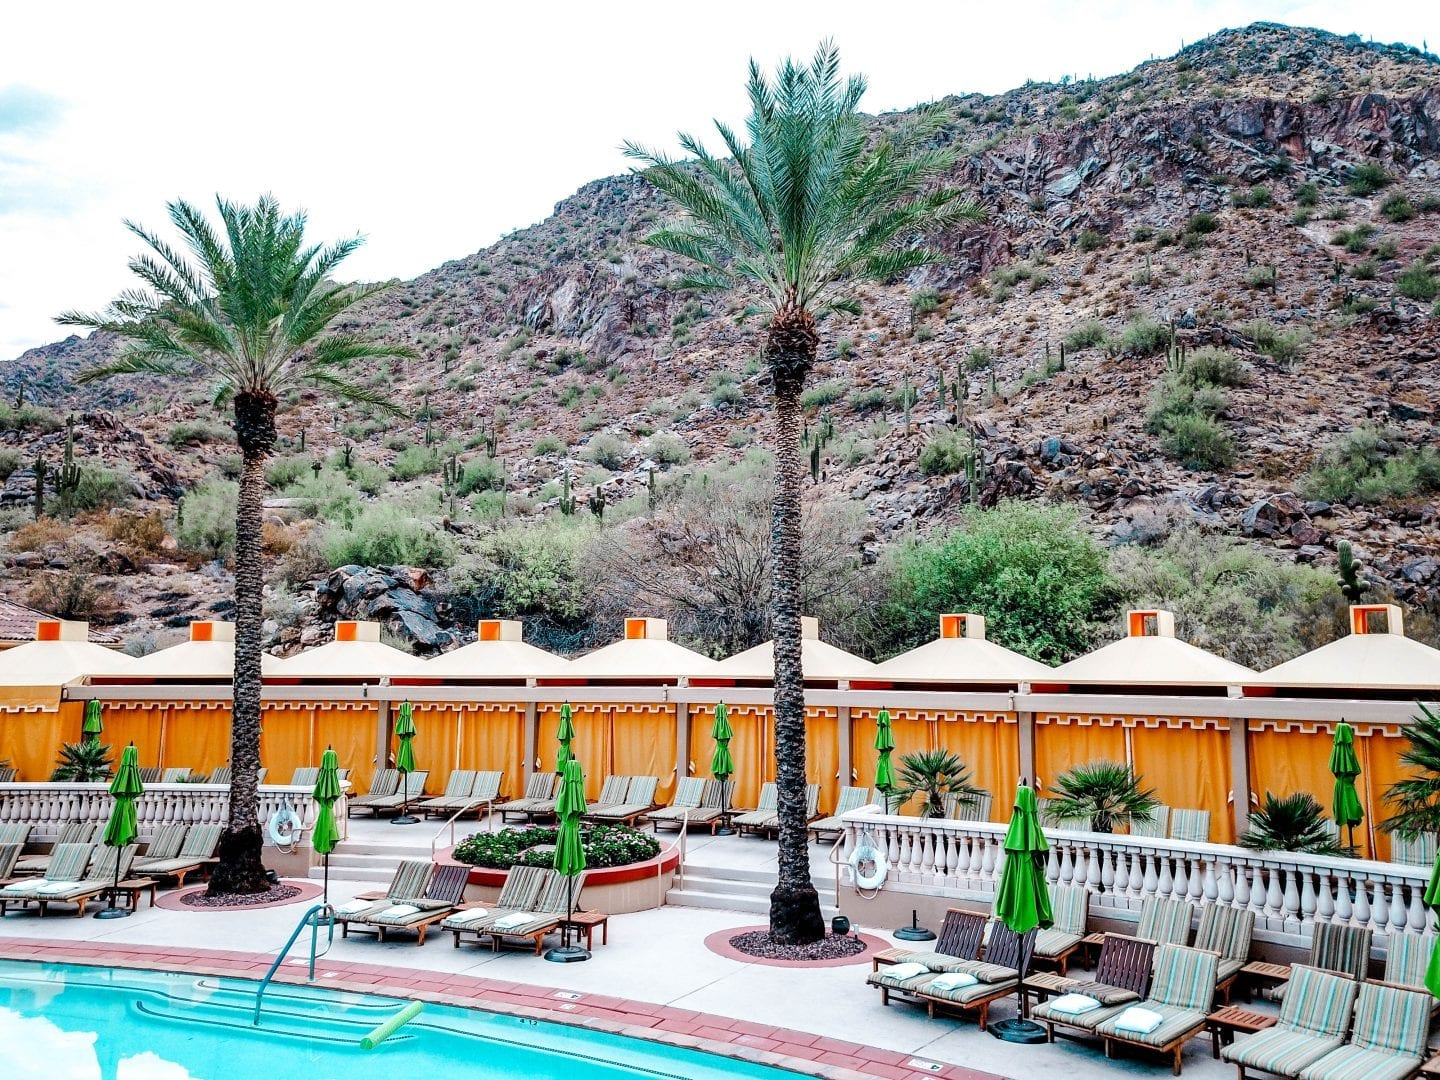 Weekend In Scottsdale: Checking In At The Canyon Suites